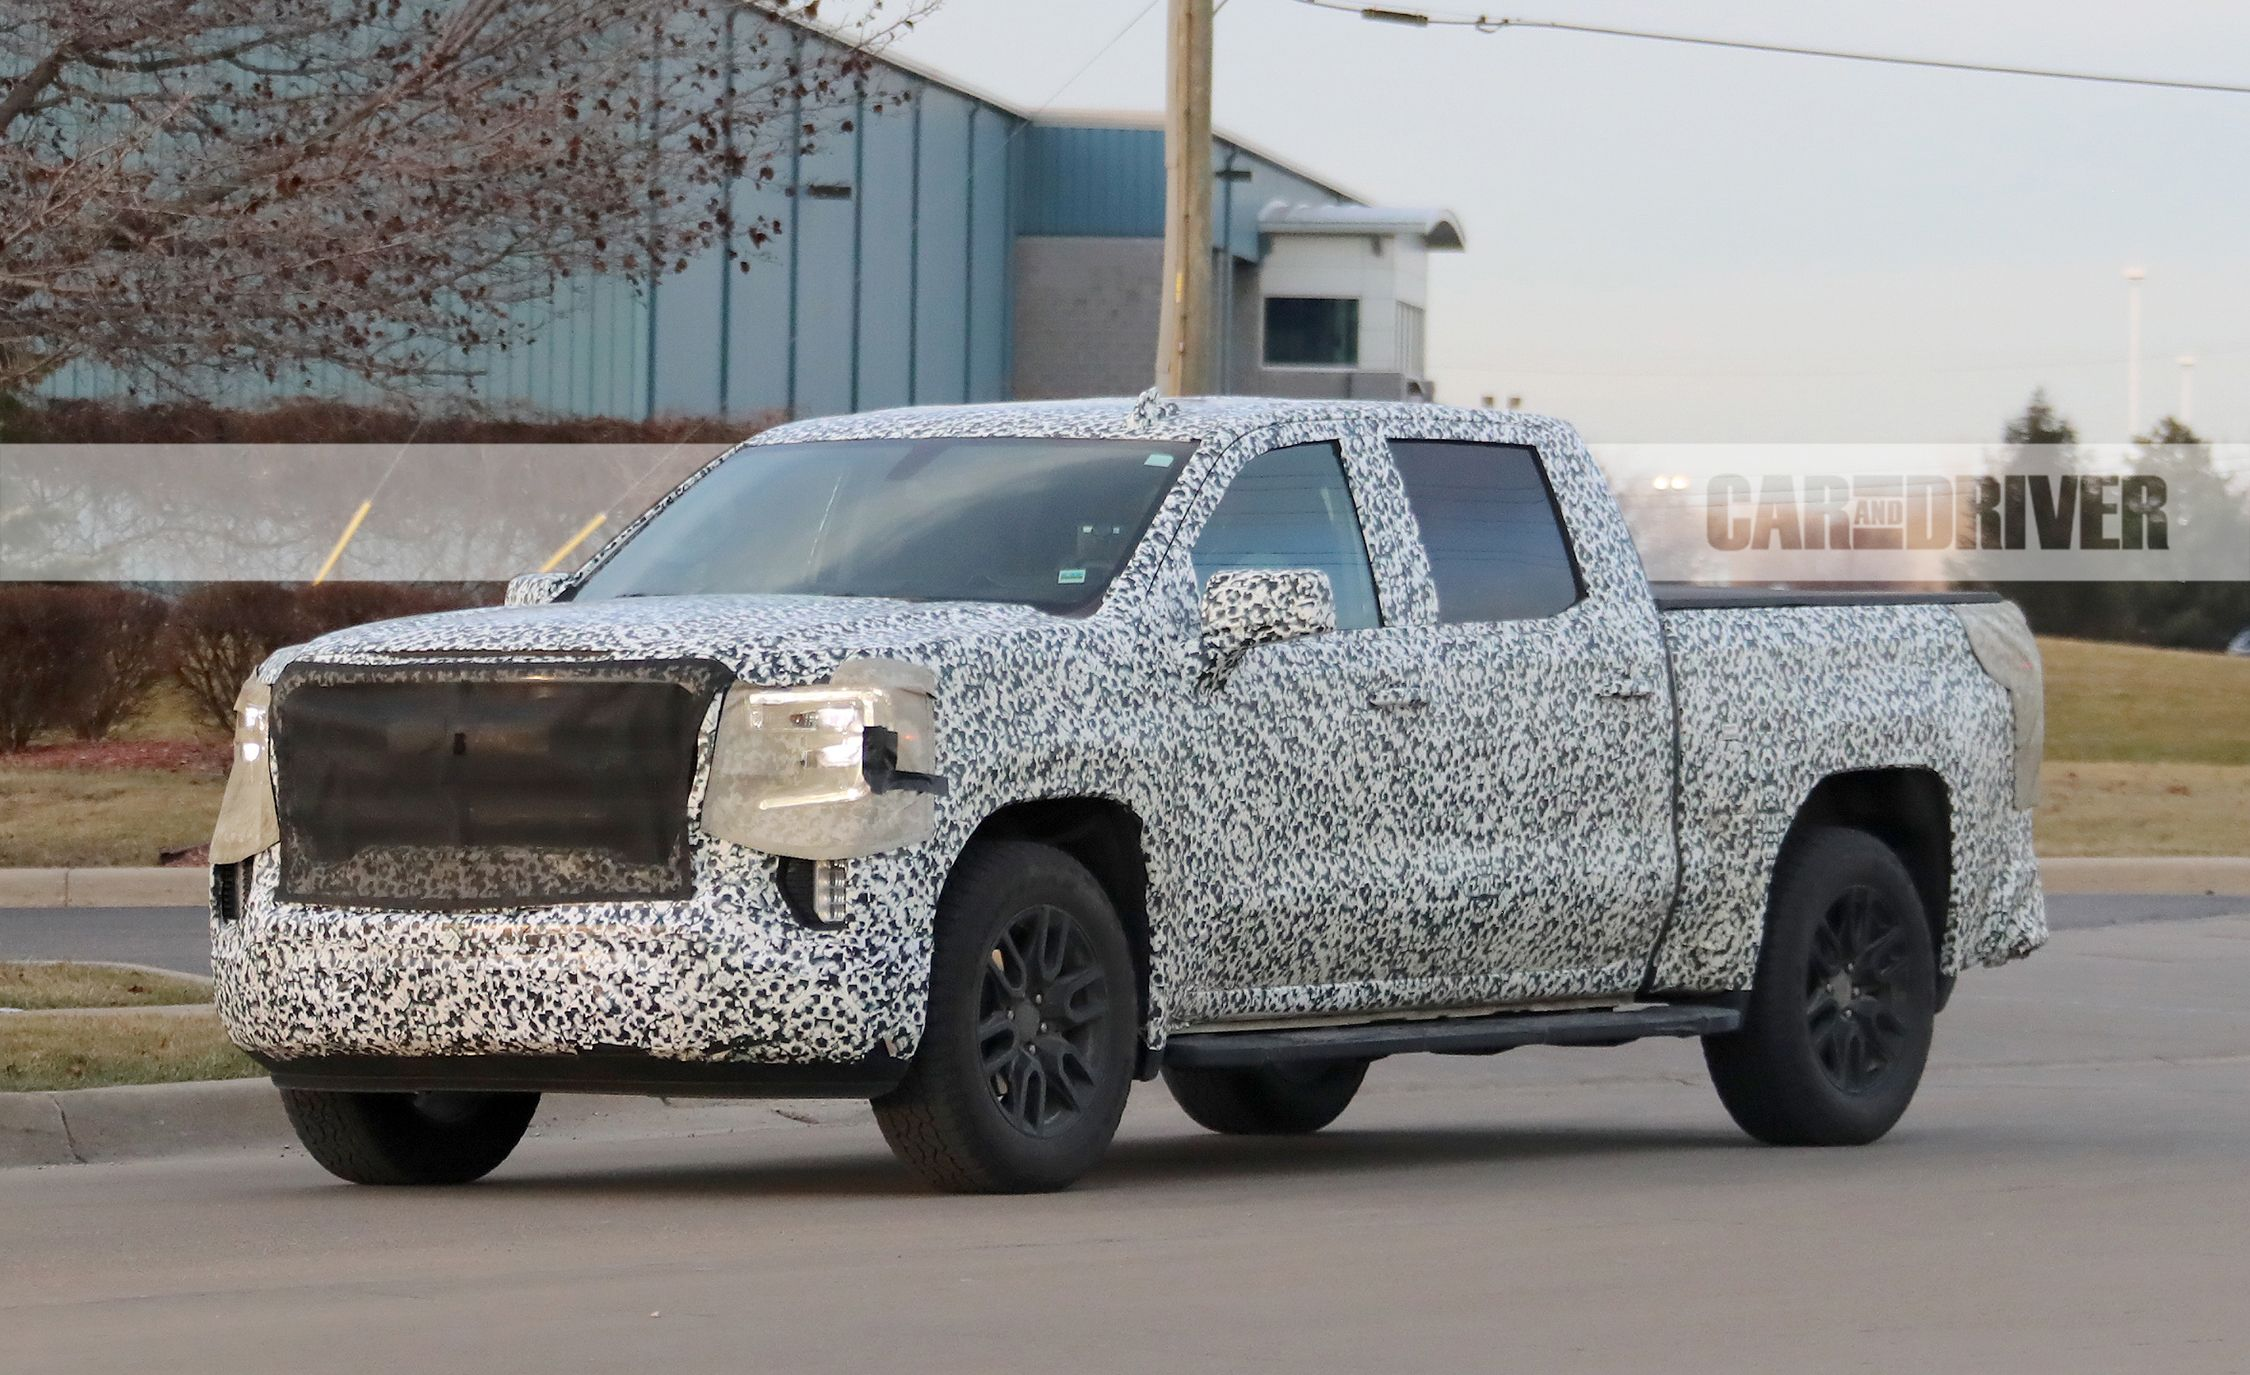 2019 GMC Sierra 1500 Spied: Making the Grade